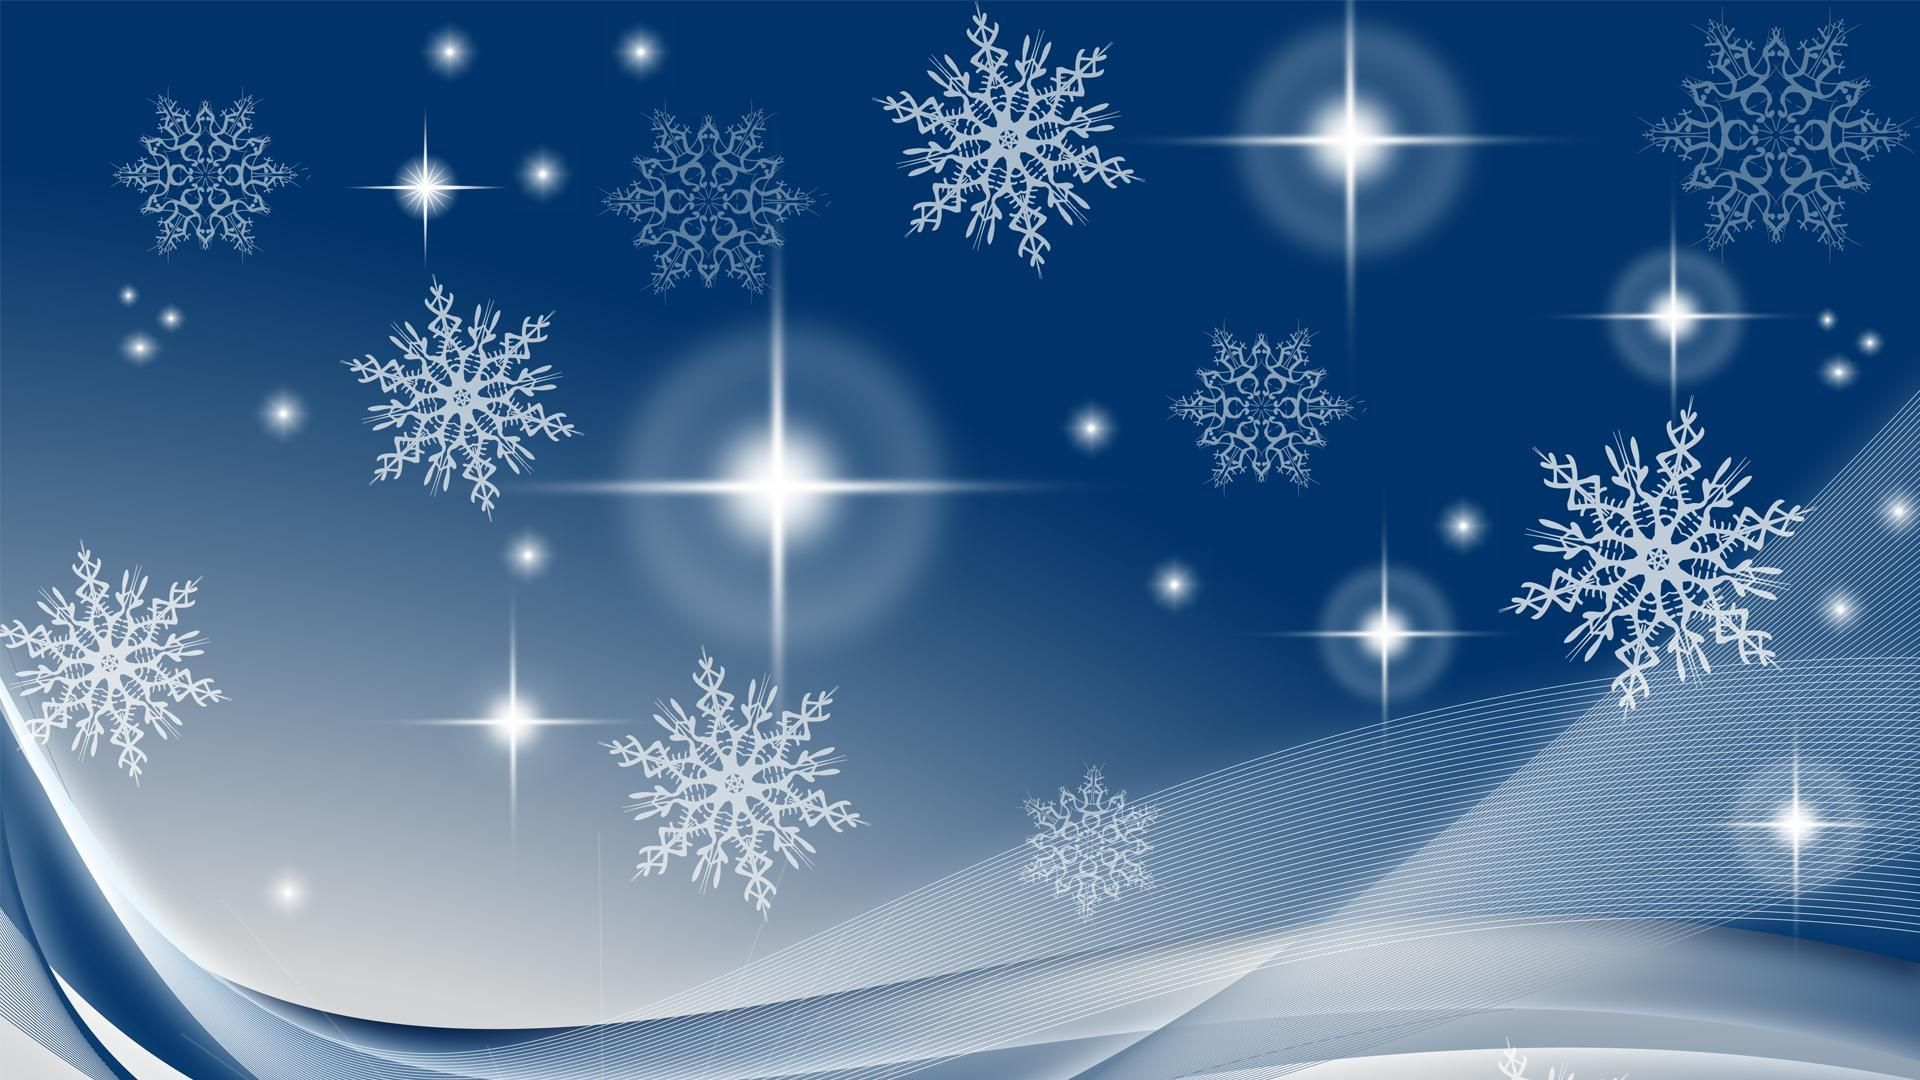 New Year With Snowflakes full hd wallpaper for laptop